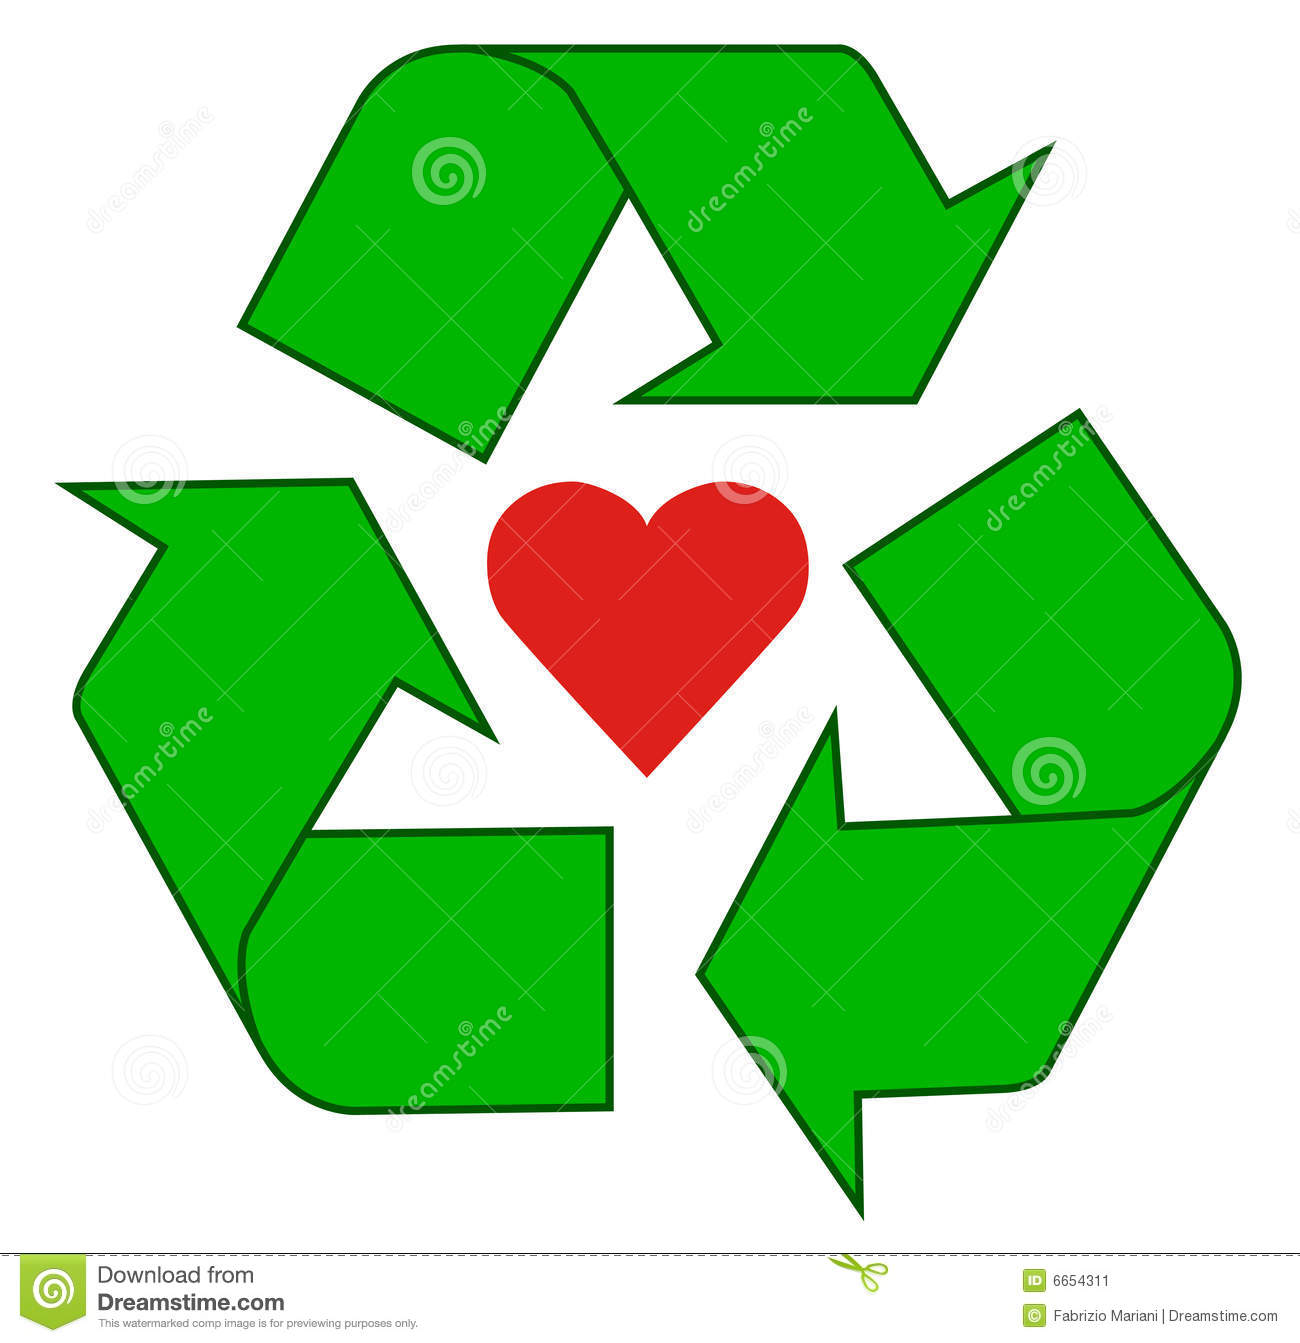 Green Recycle Symbol A green recycling symbol.